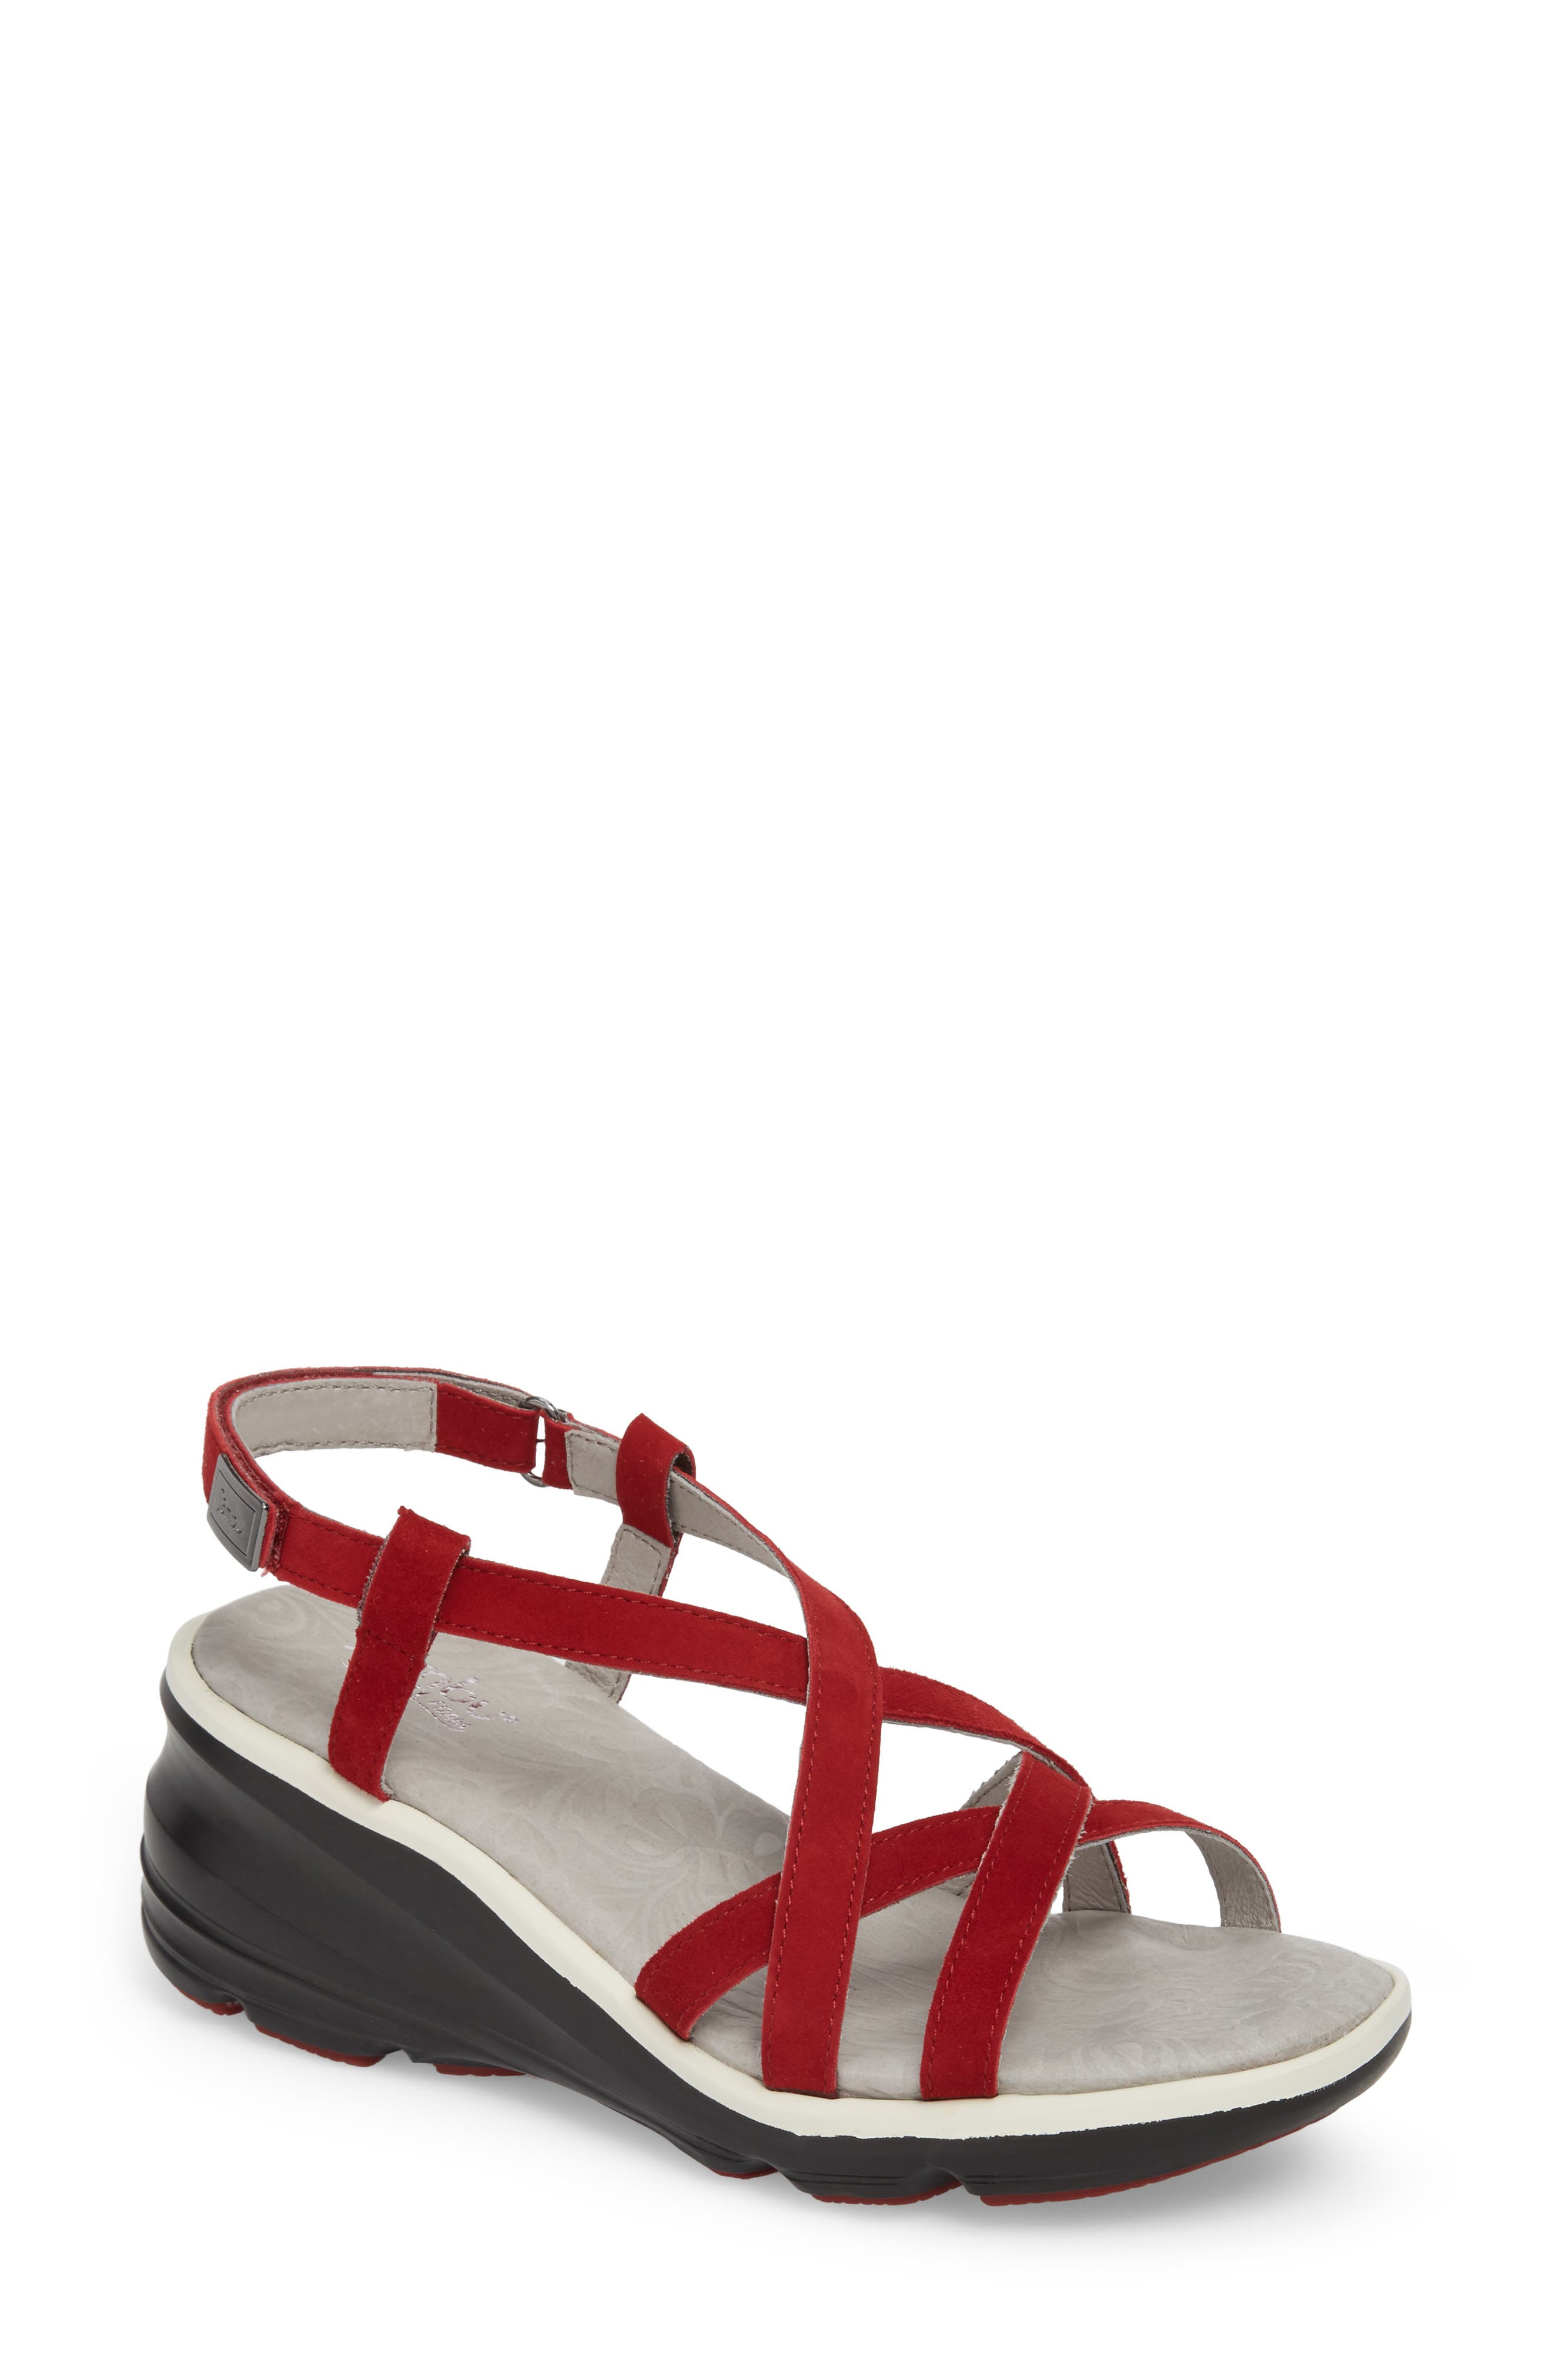 Ginger Wedge Sandal,                             Main thumbnail 1, color,                             Red Suede